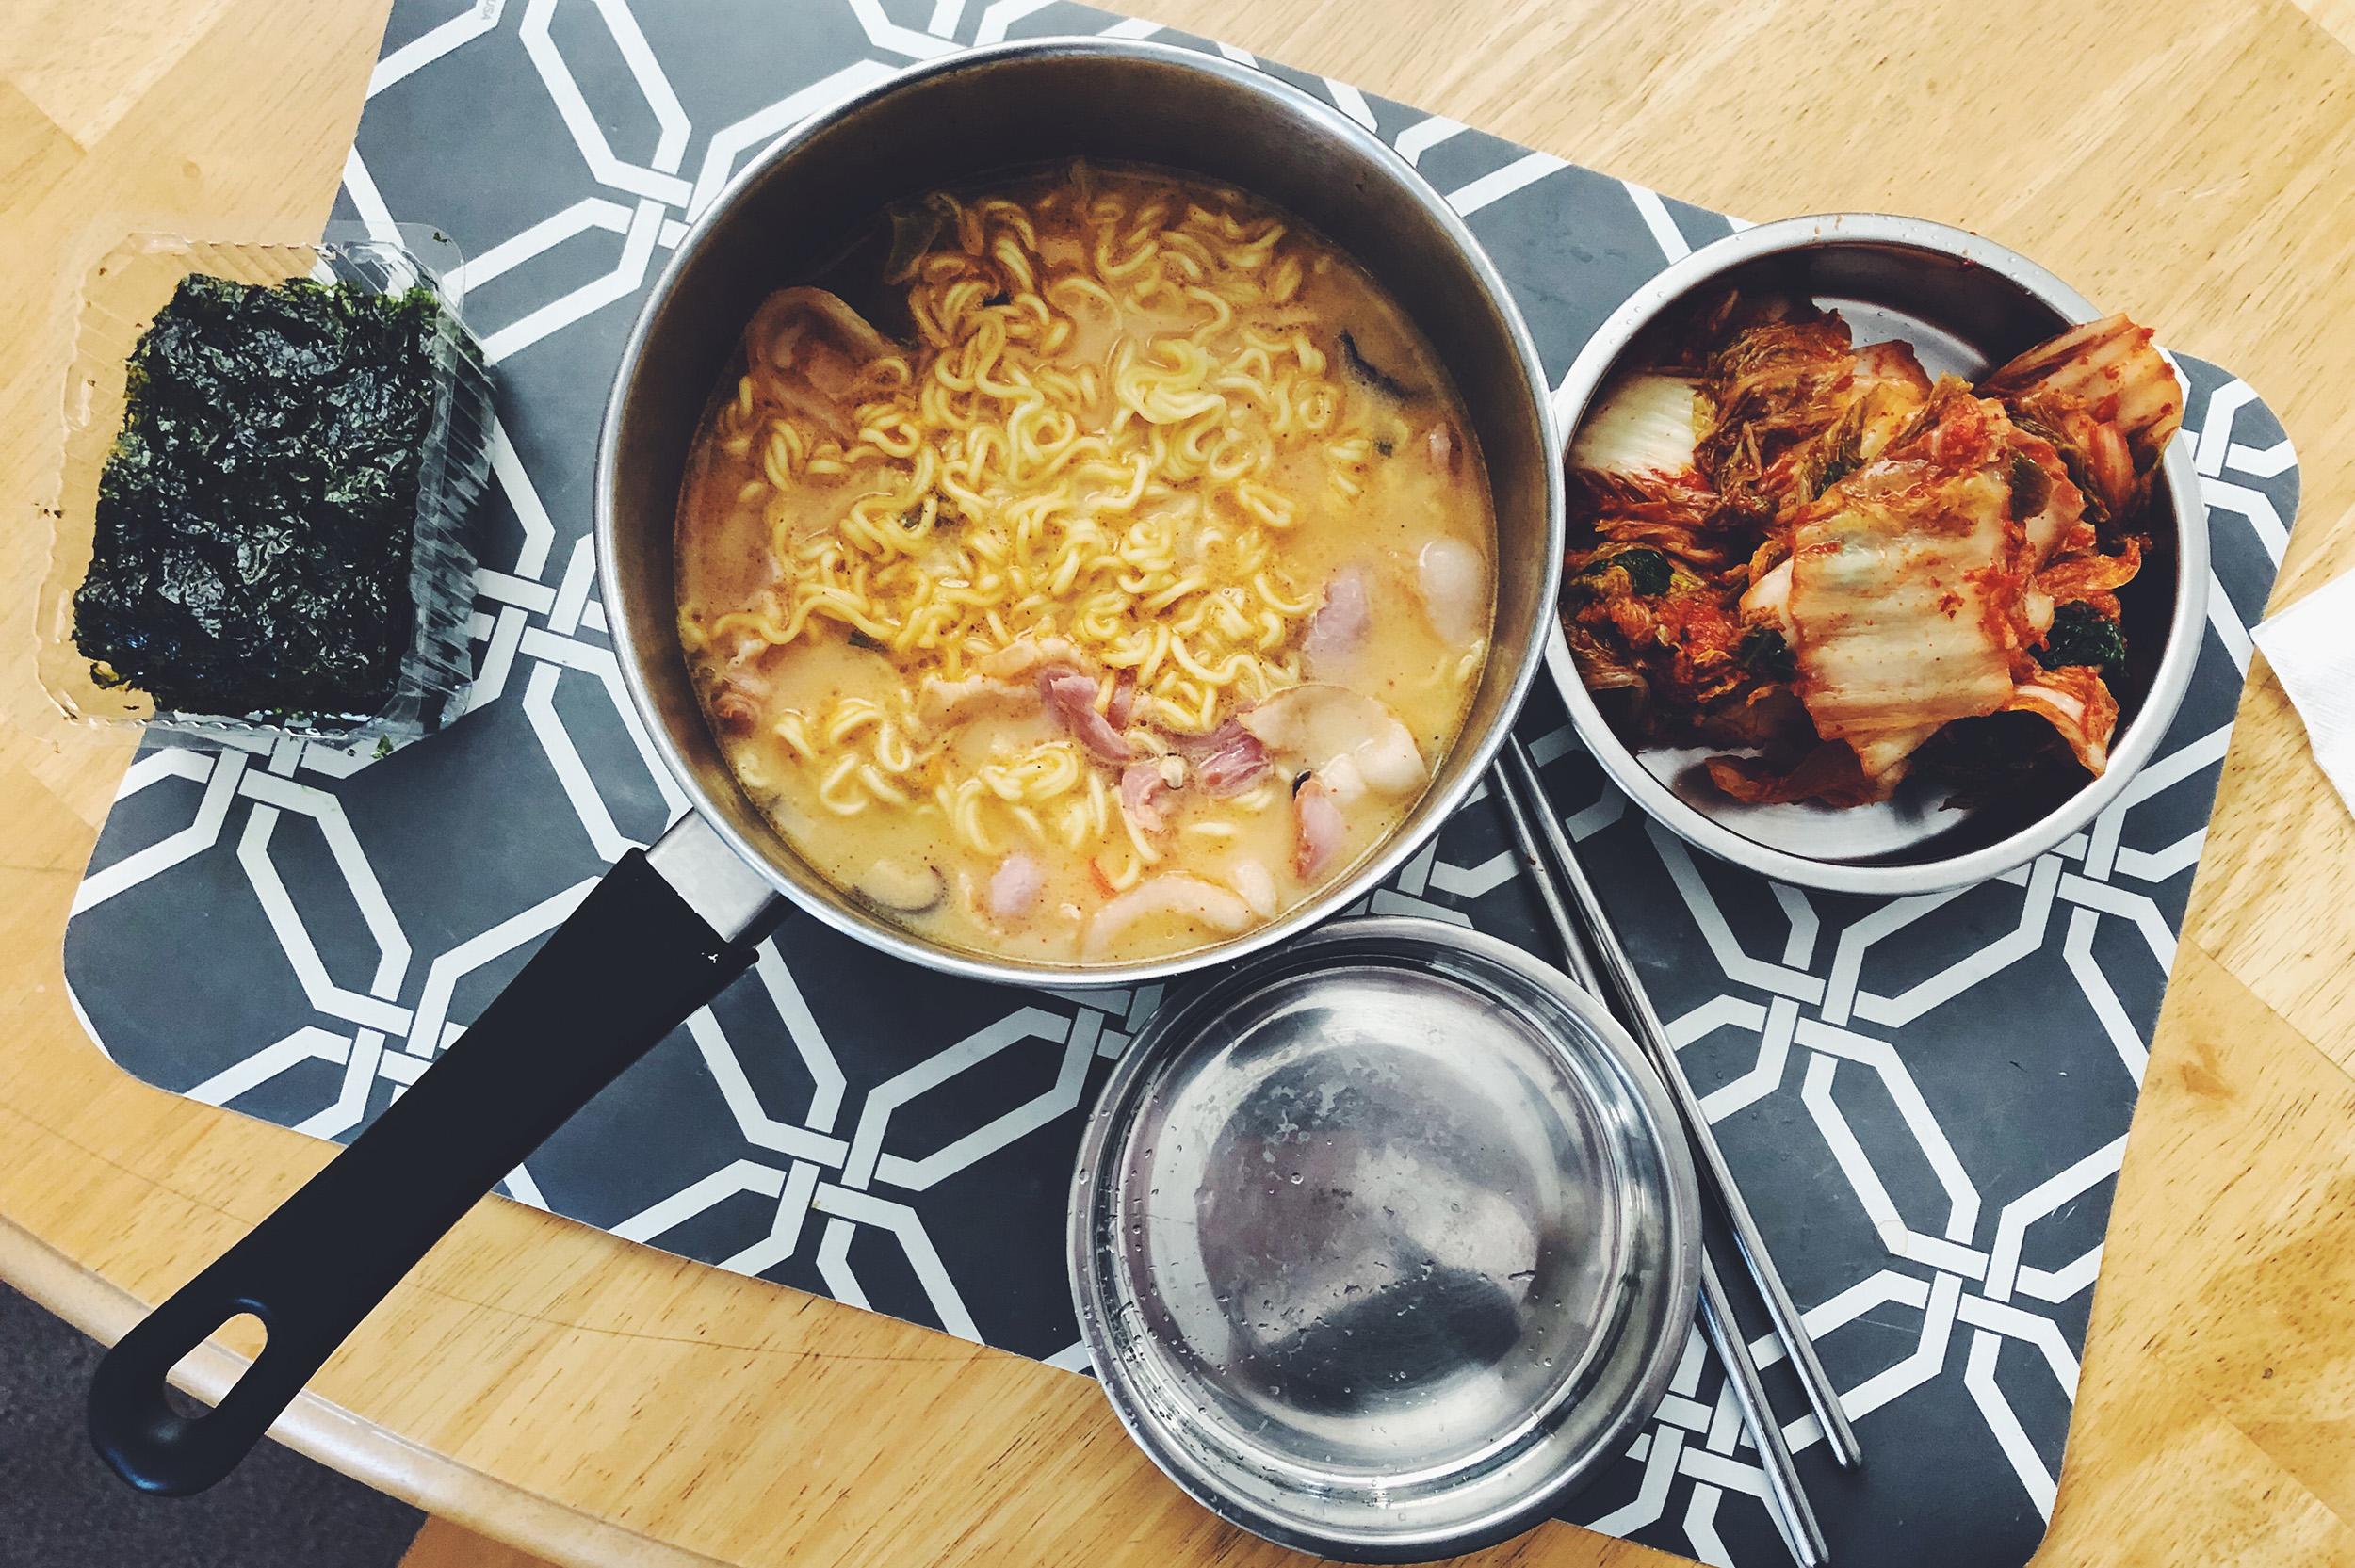 Ramen, kimchi, and seaweed: the lunch of champions.